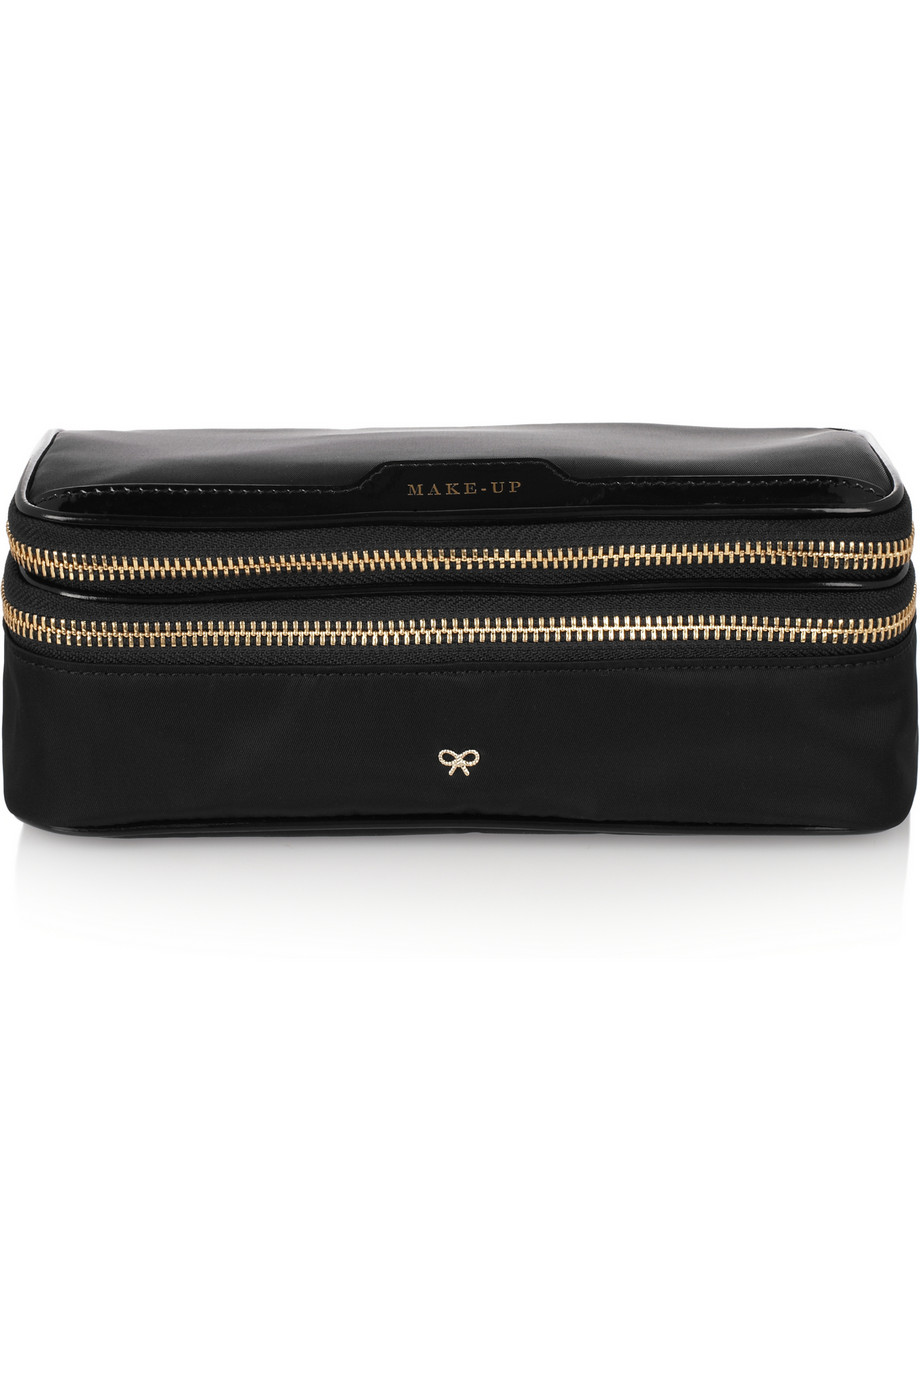 Lyst - Anya Hindmarch Make-up Ii Medium Patent Leather-trimmed ... 03a3625cbe8b5